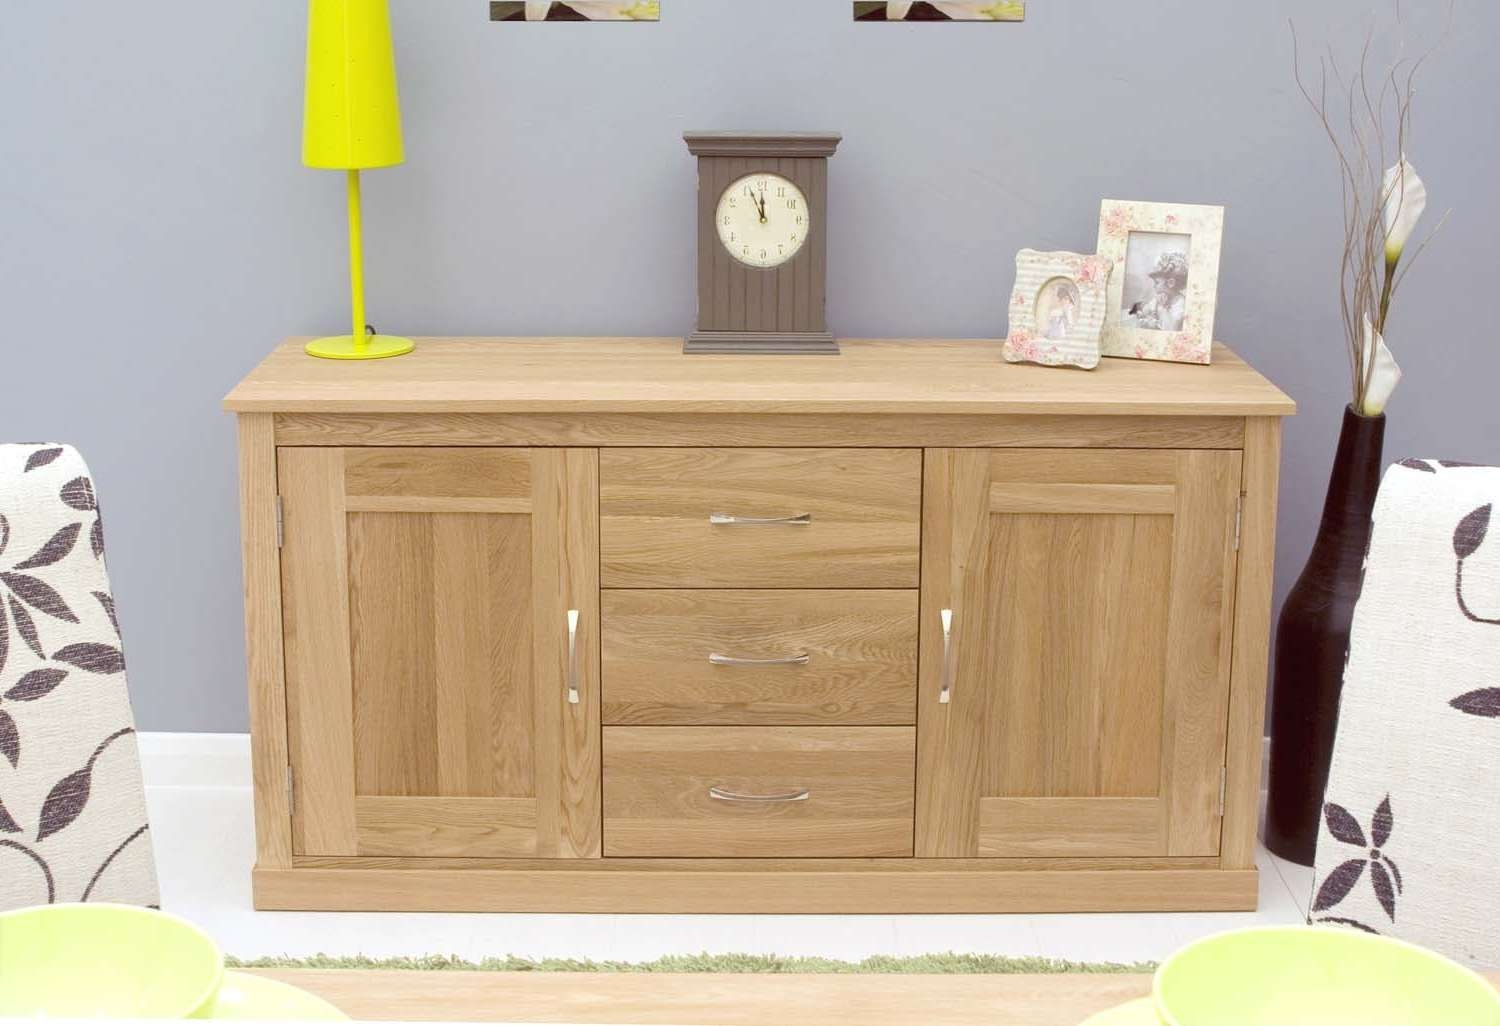 Modern Light Oak Sideboards And Console Table | Solid Oak For Living Room Sideboards (View 12 of 20)